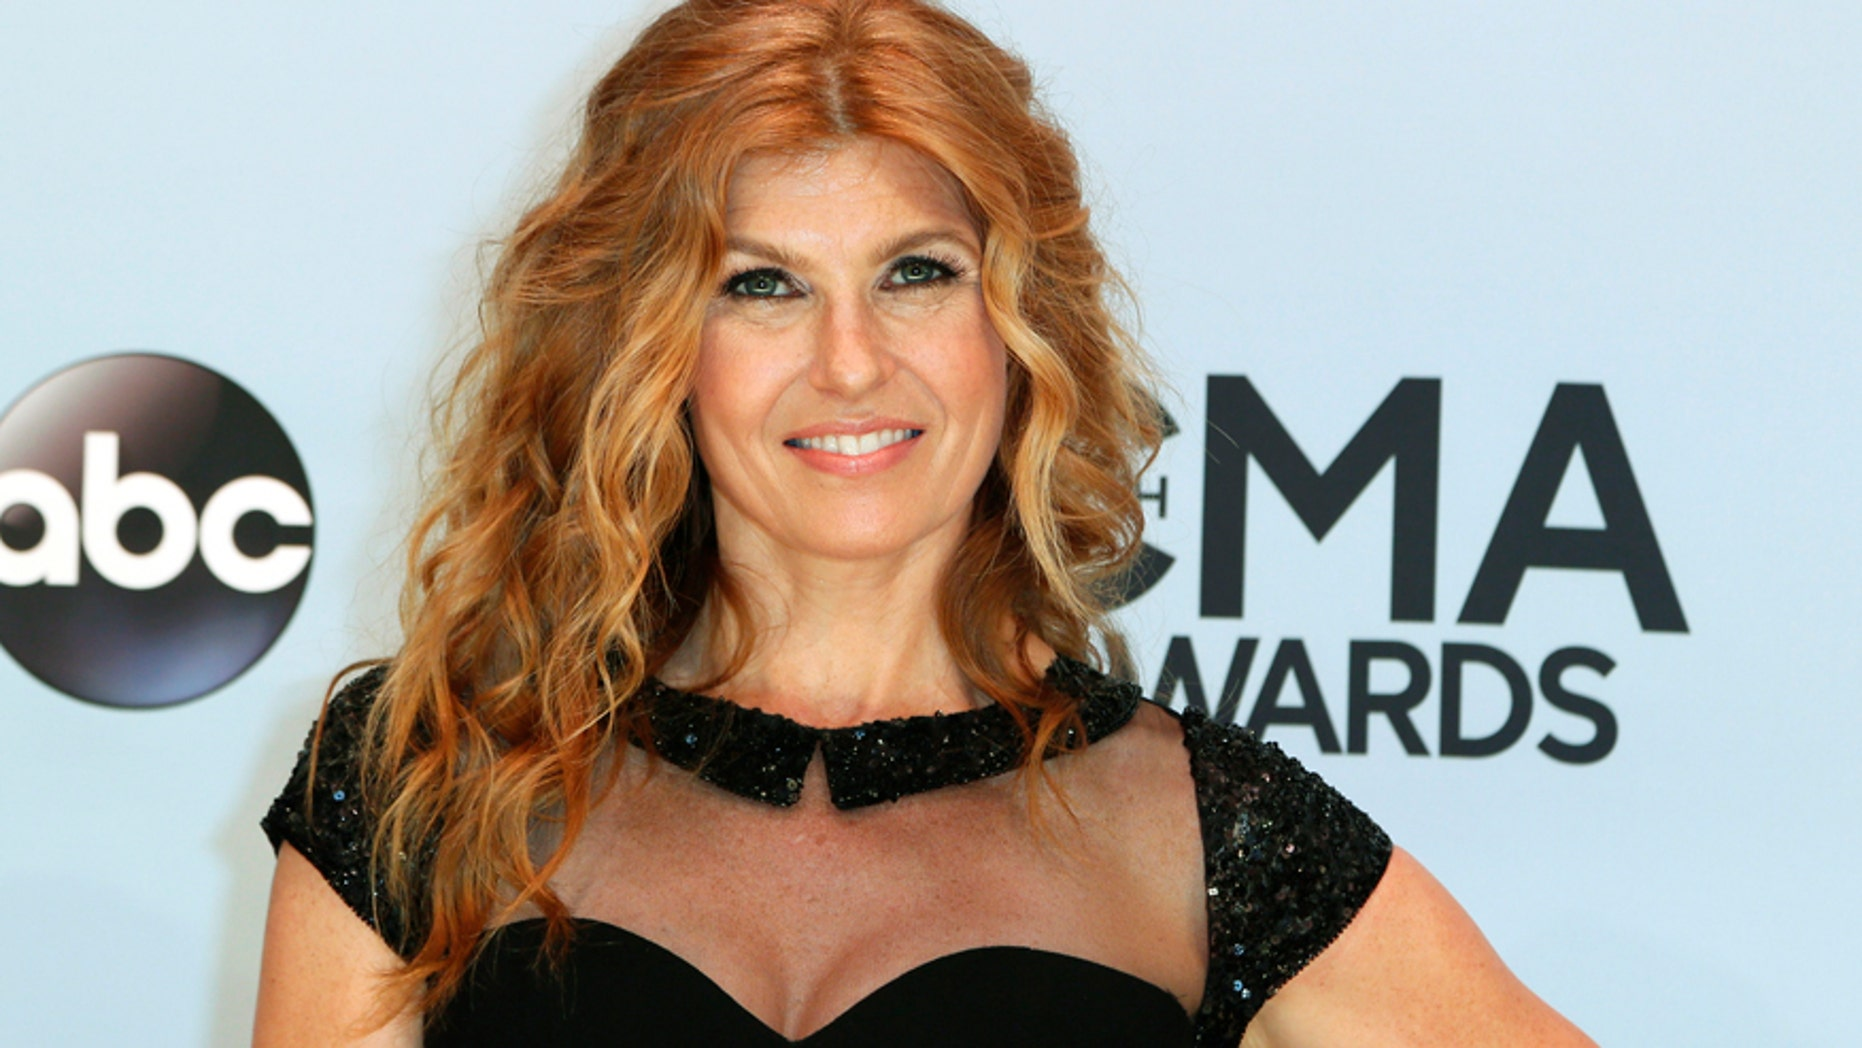 Connie Britton poses on arrival at the 47th Country Music Association Awards in Nashville, Tennessee November 6, 2013.